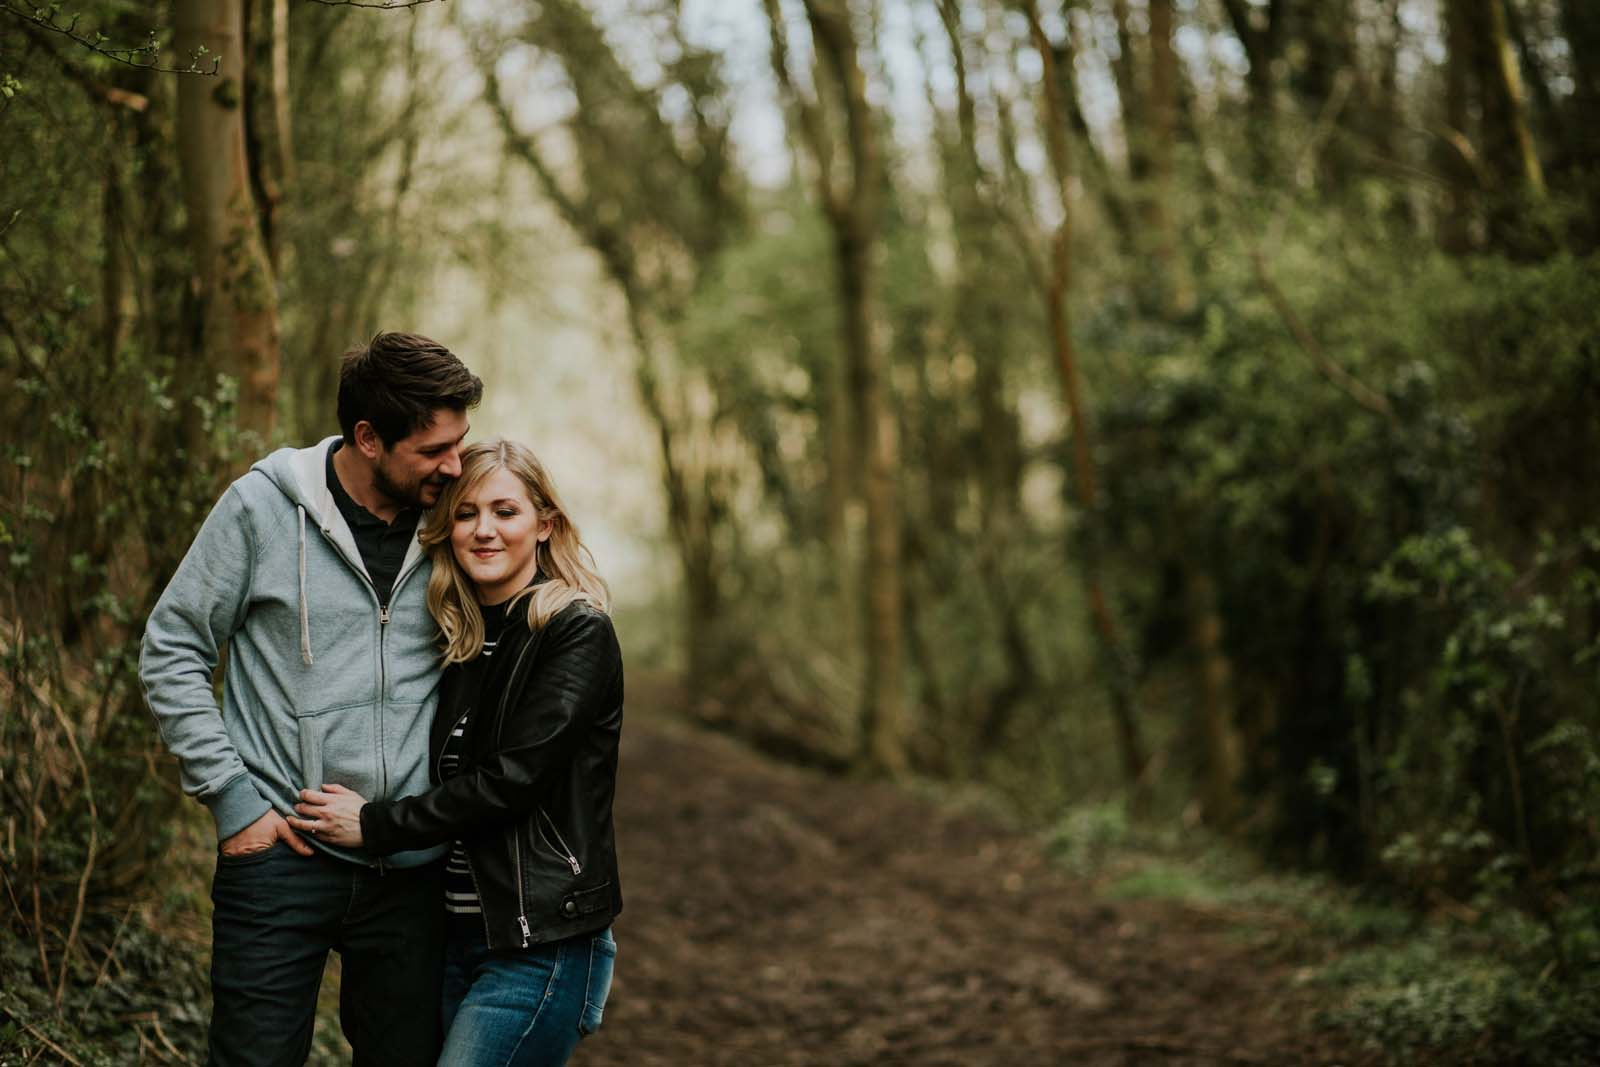 Finedon-Pocket-Park-Engagement-Session-2